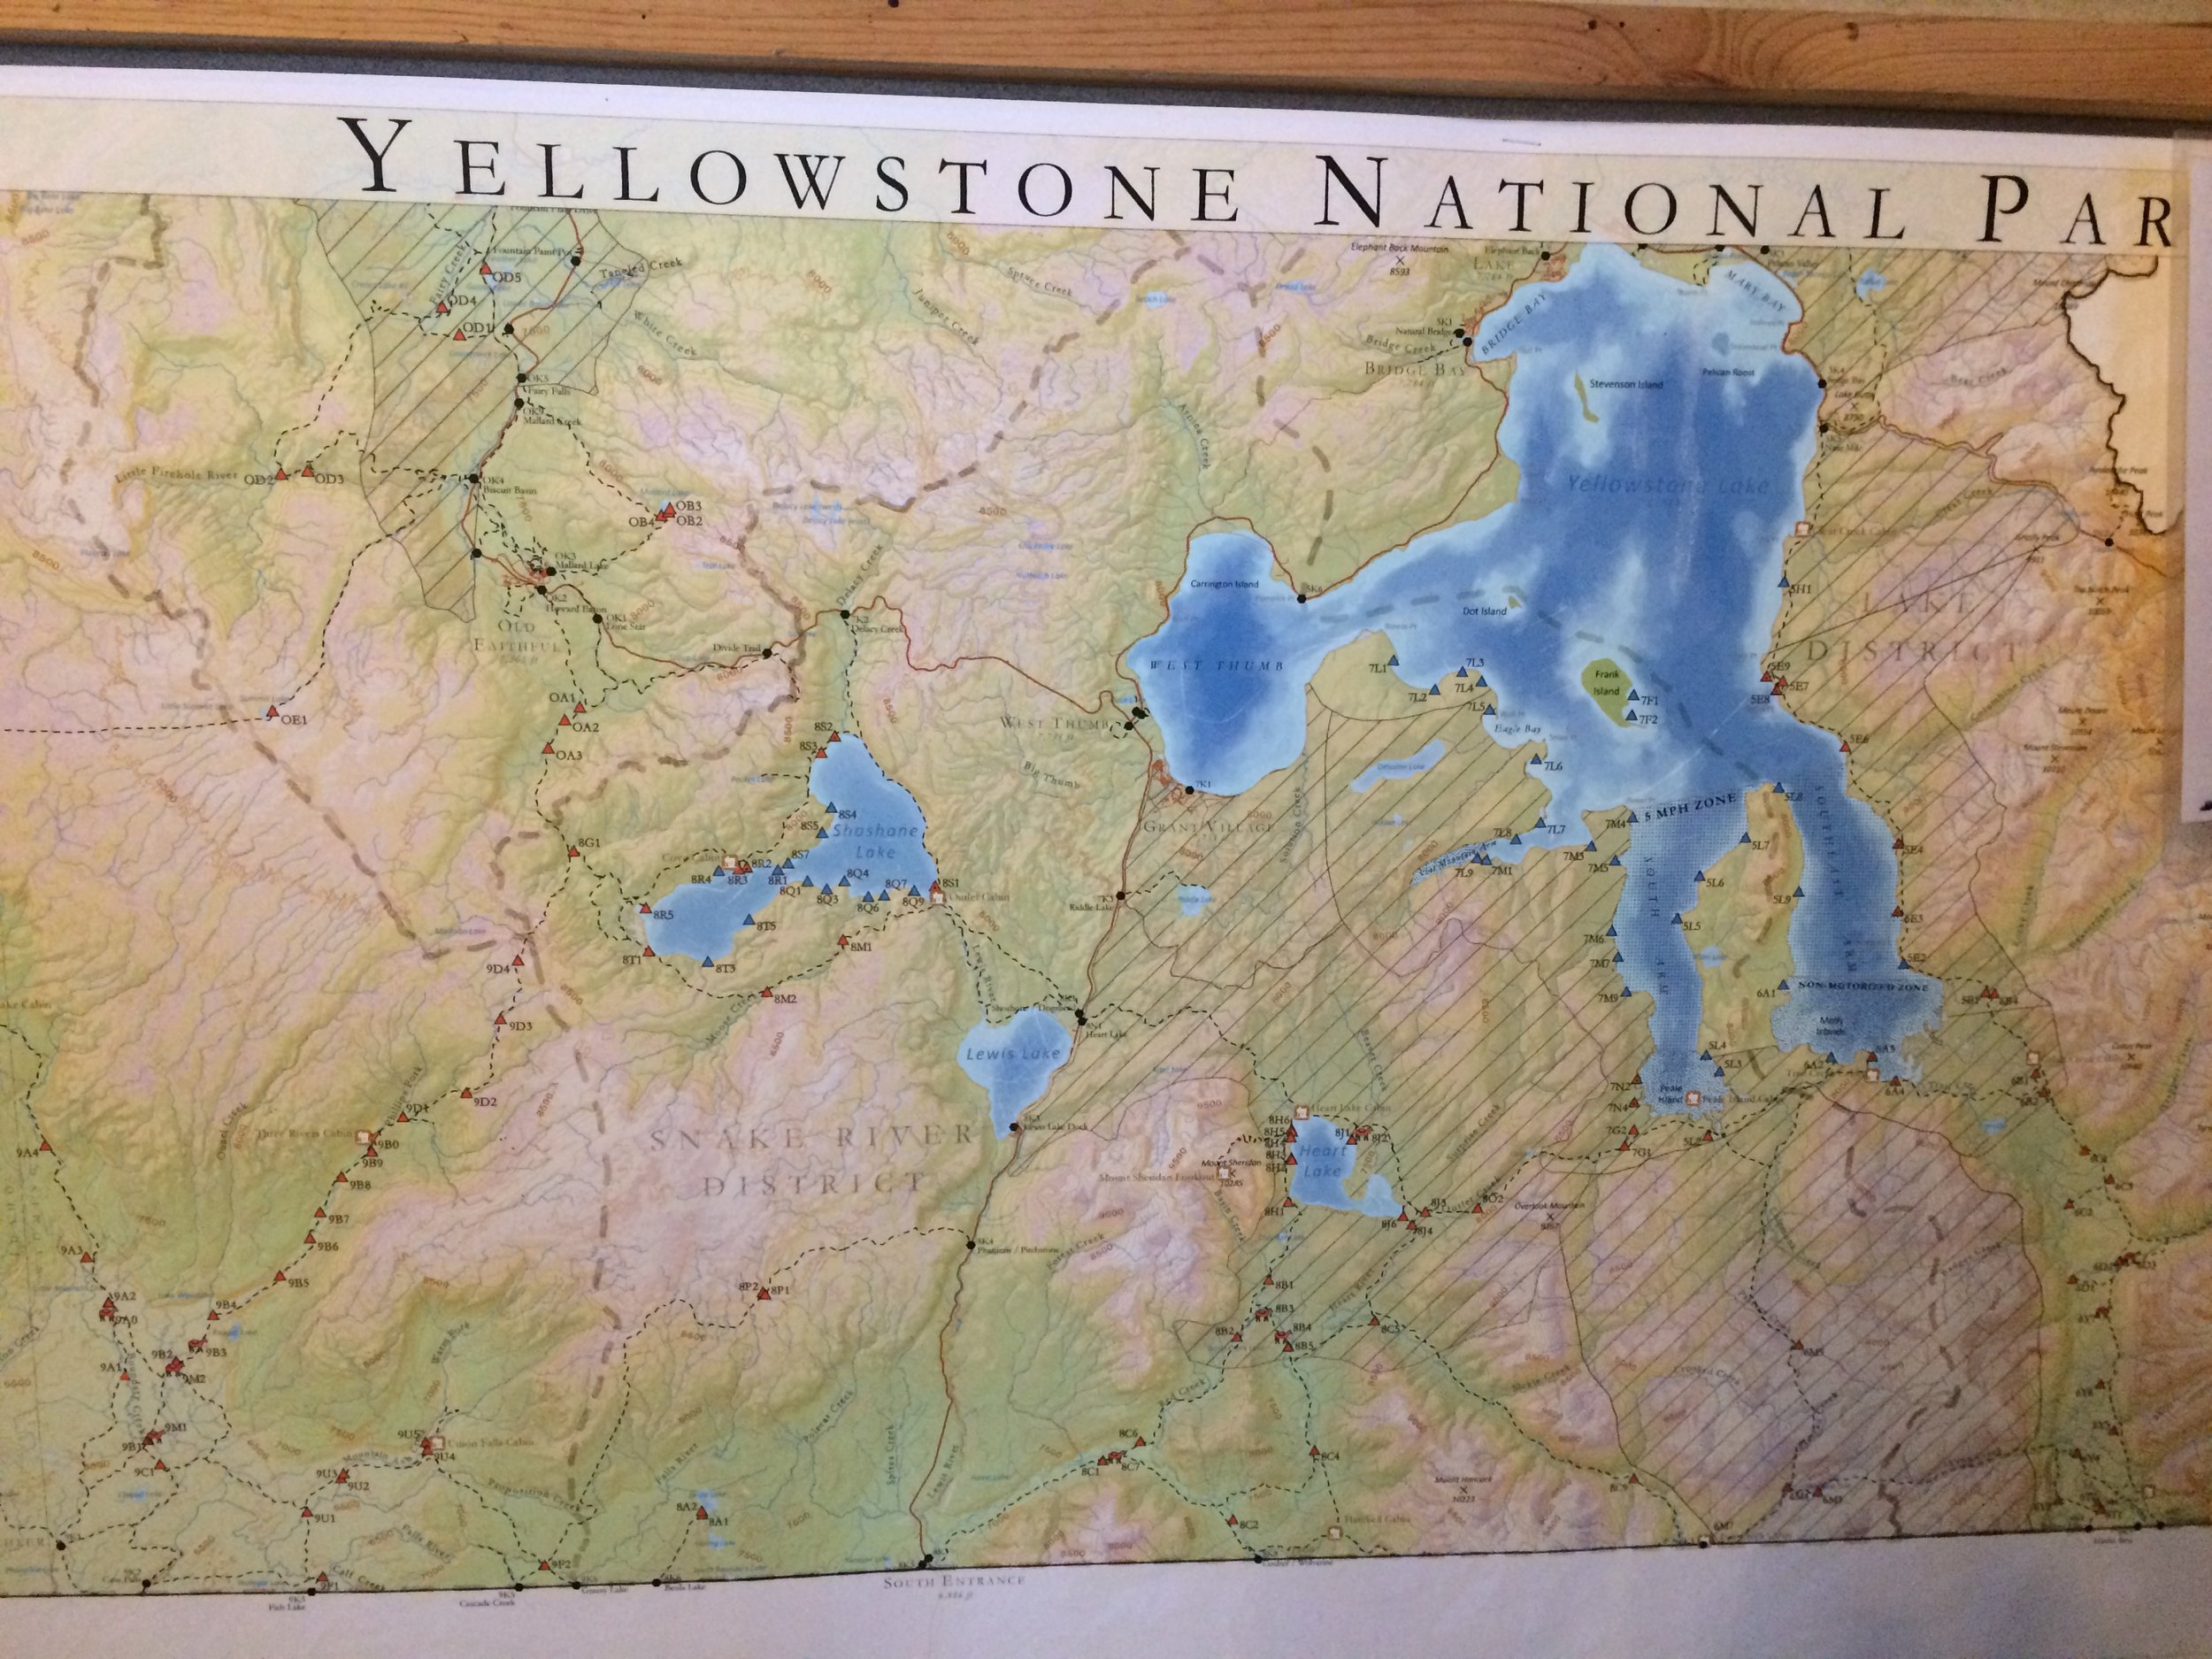 Yellowstone is roughly 50X60 miles as the crow flies. 3500 square miles. bigger than Rhode Island and Delaware, combined.